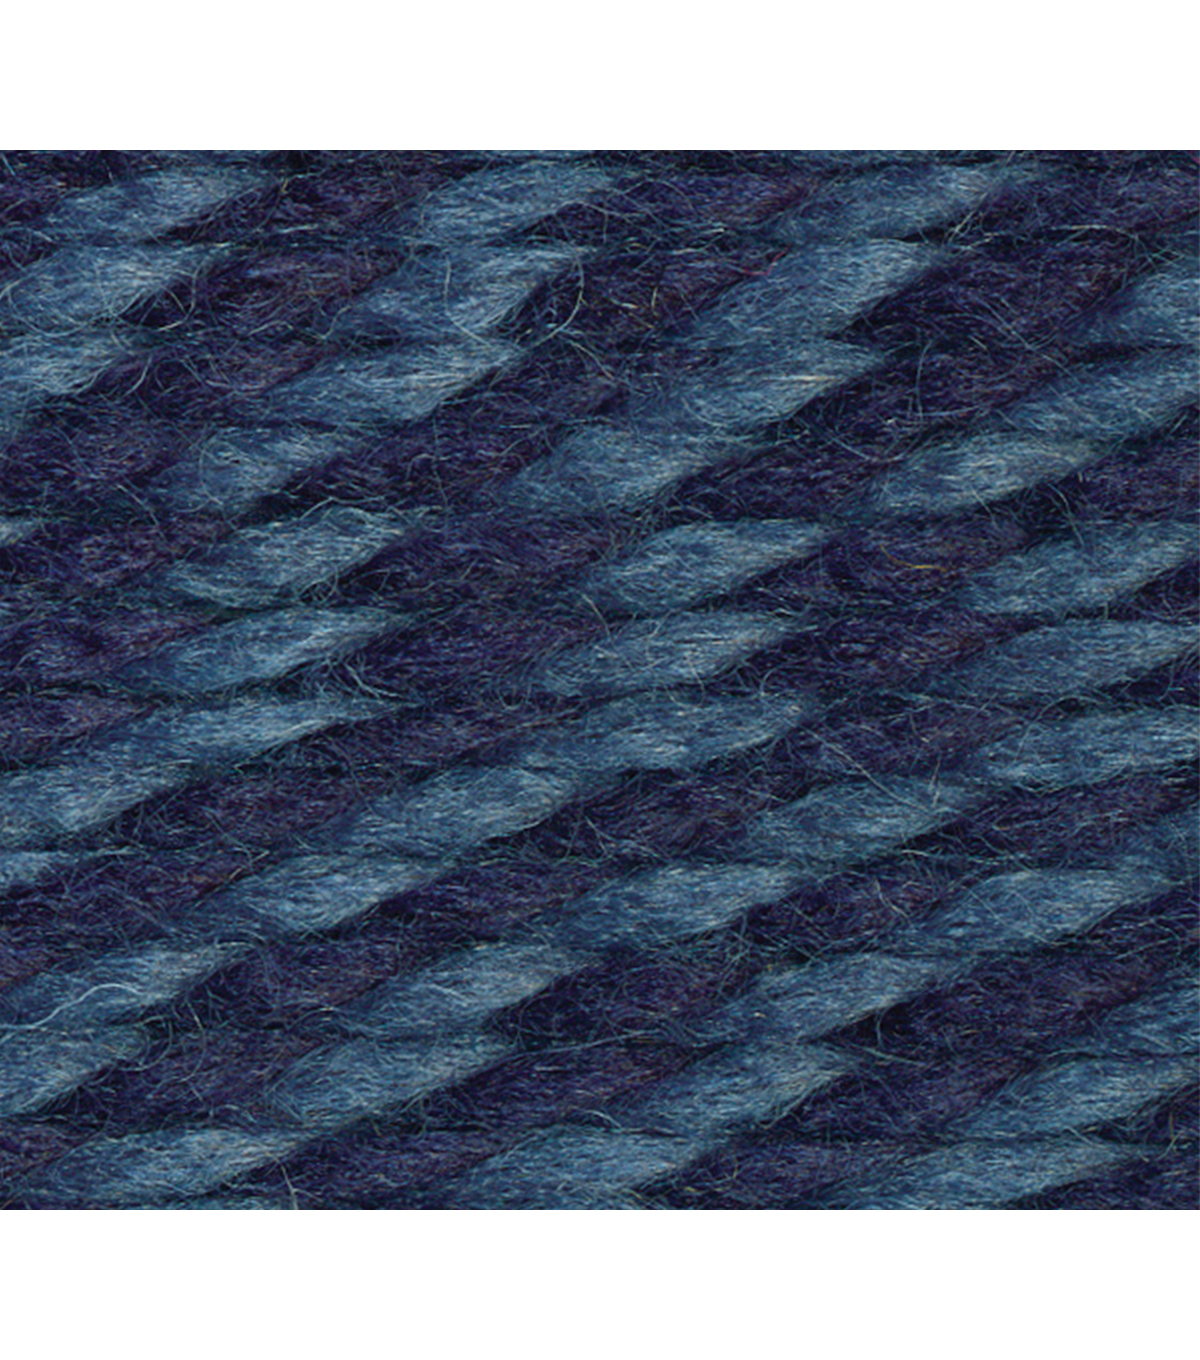 Lion Brand Wool-Ease Thick And Quick Yarn, Denim Twist